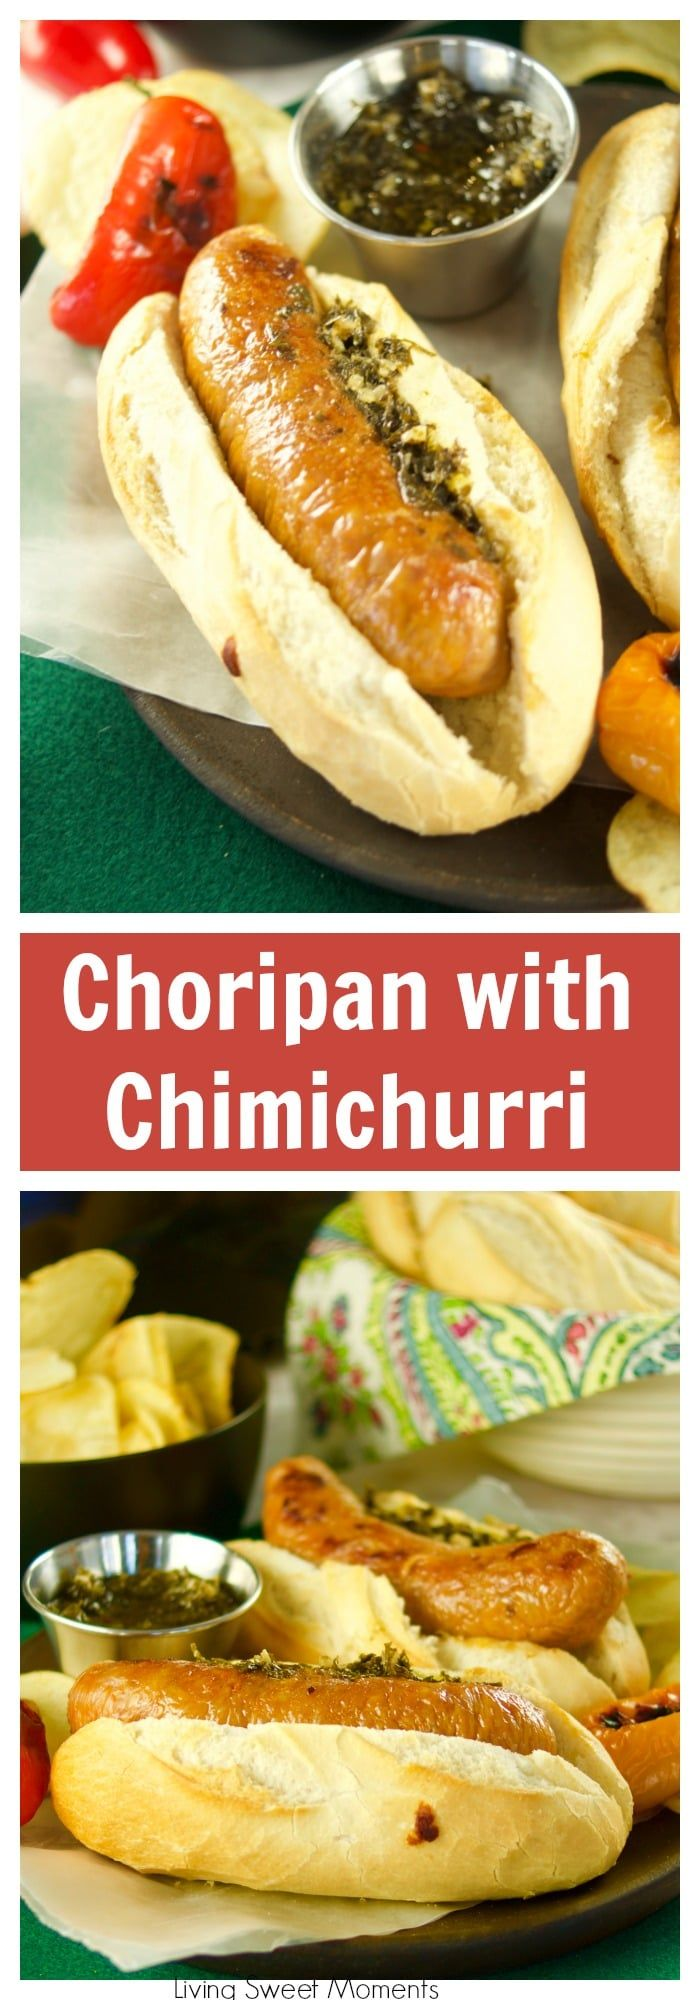 Juicy and delicious grilled Choripan, aka Chorizo Hot Dogs served with chimichurri sauce. The perfect food for parties and celebrations. #PhilipsGameDay #ad  via @Livingsmoments